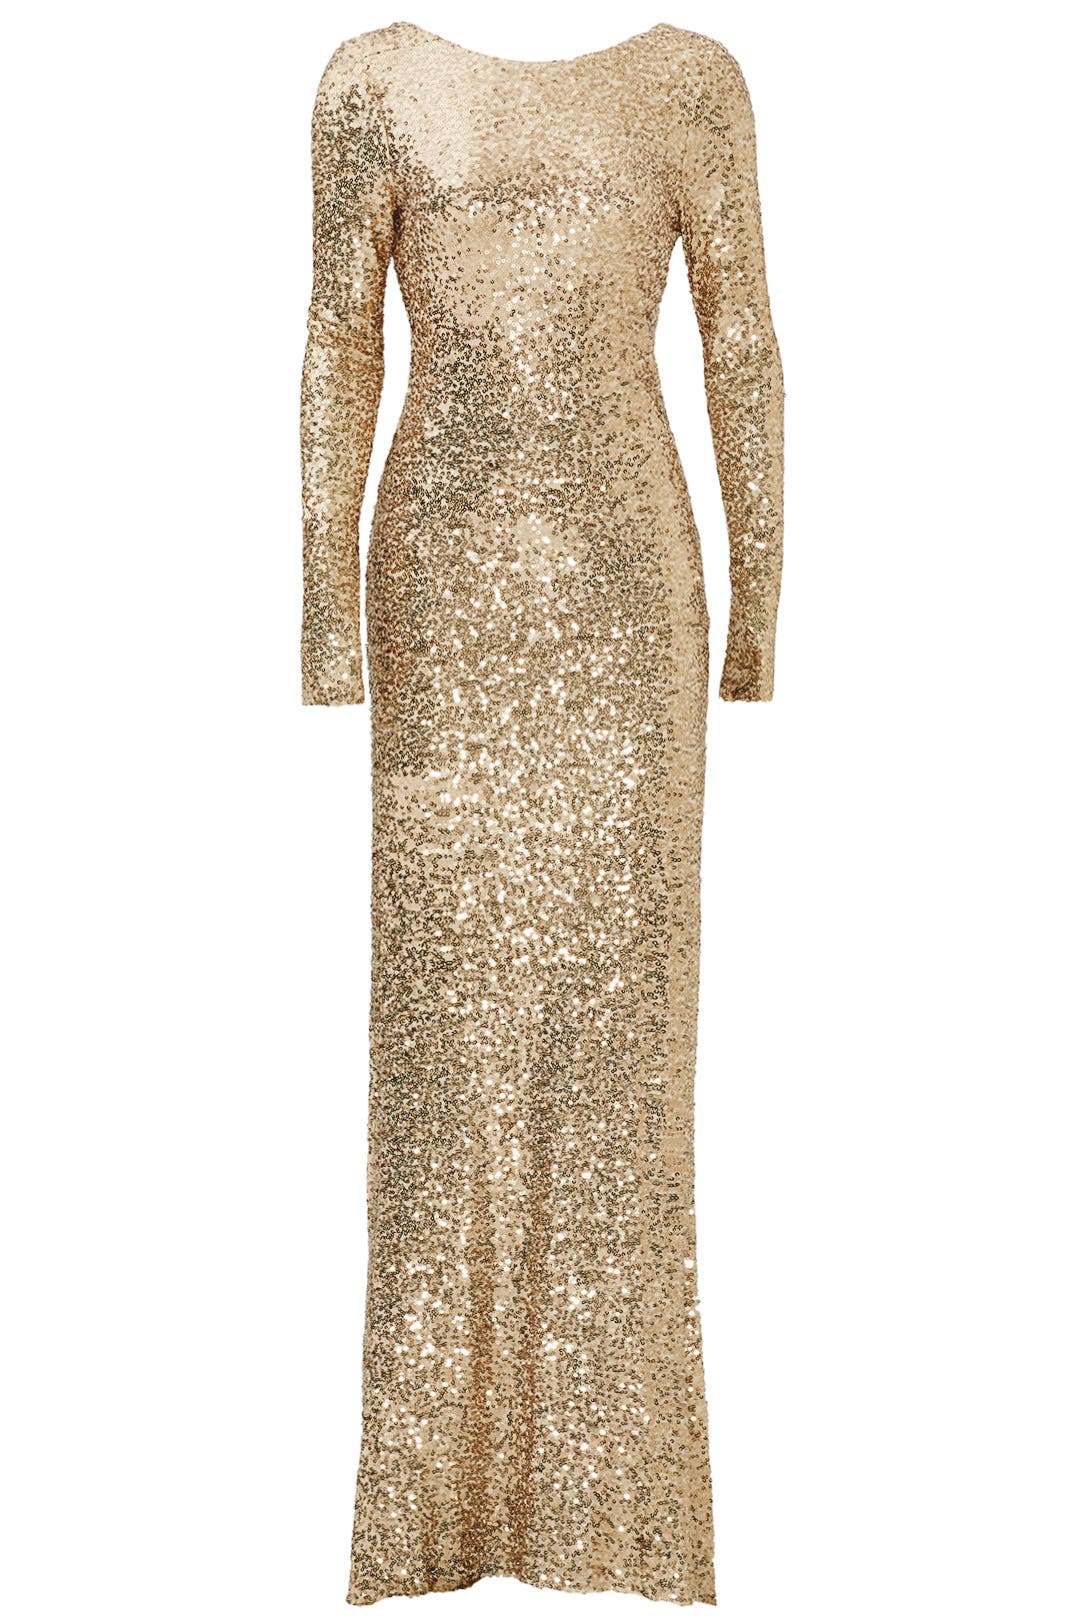 Gold Dara Gown by Badgley Mischka for $100 | Rent the Runway